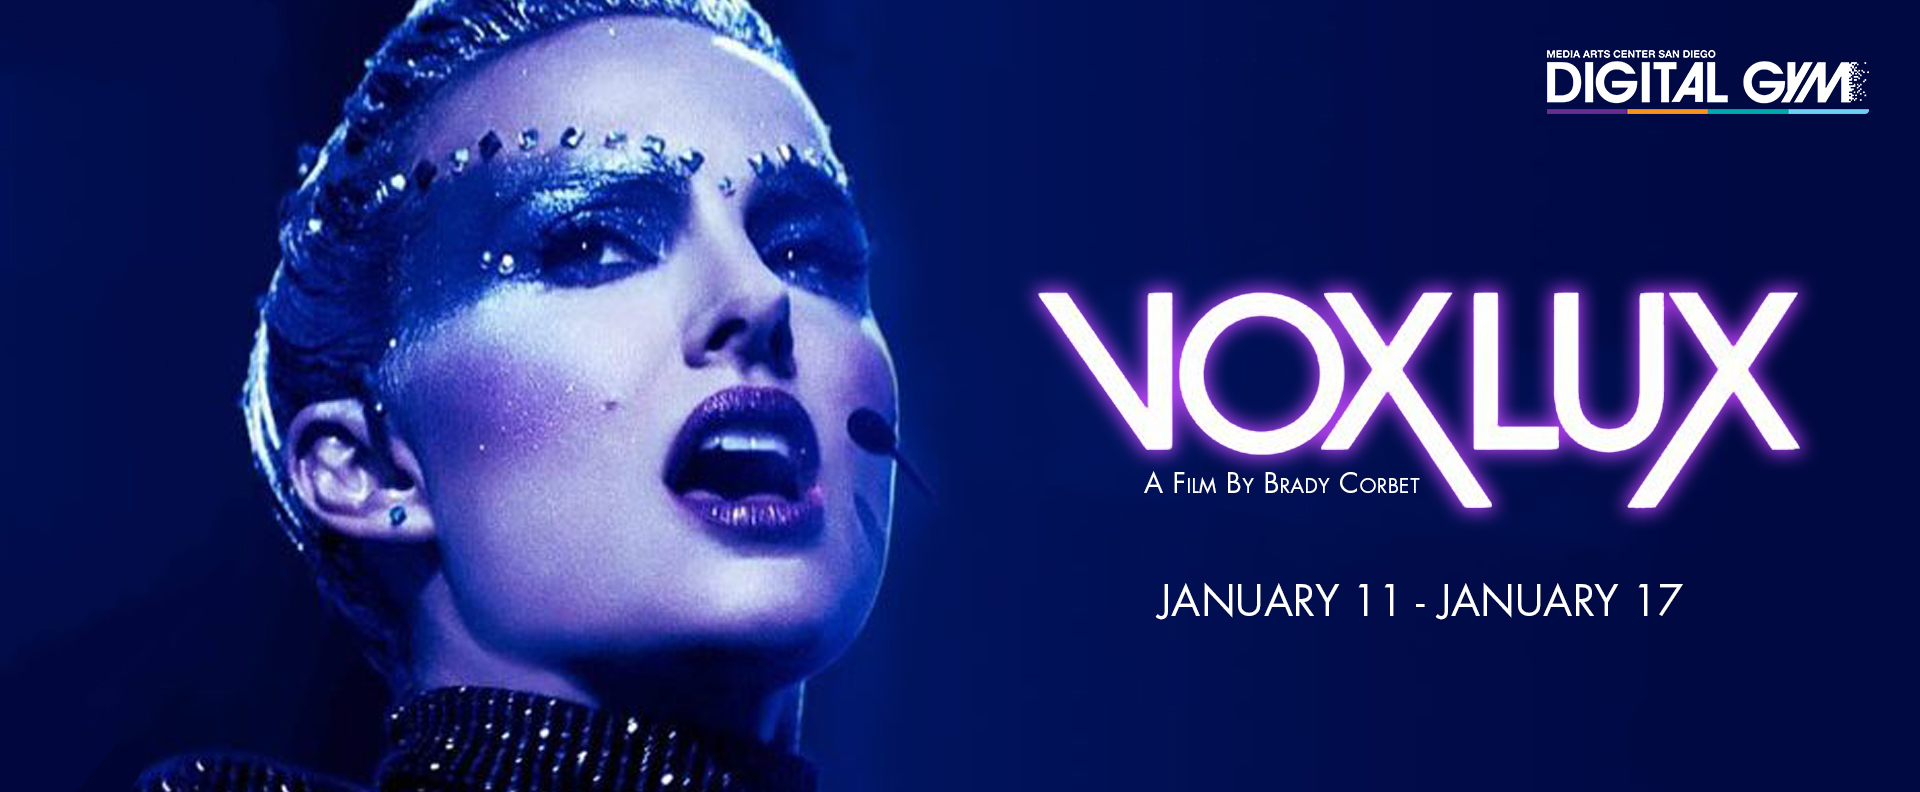 vox lux Digital gym cinema San Diego